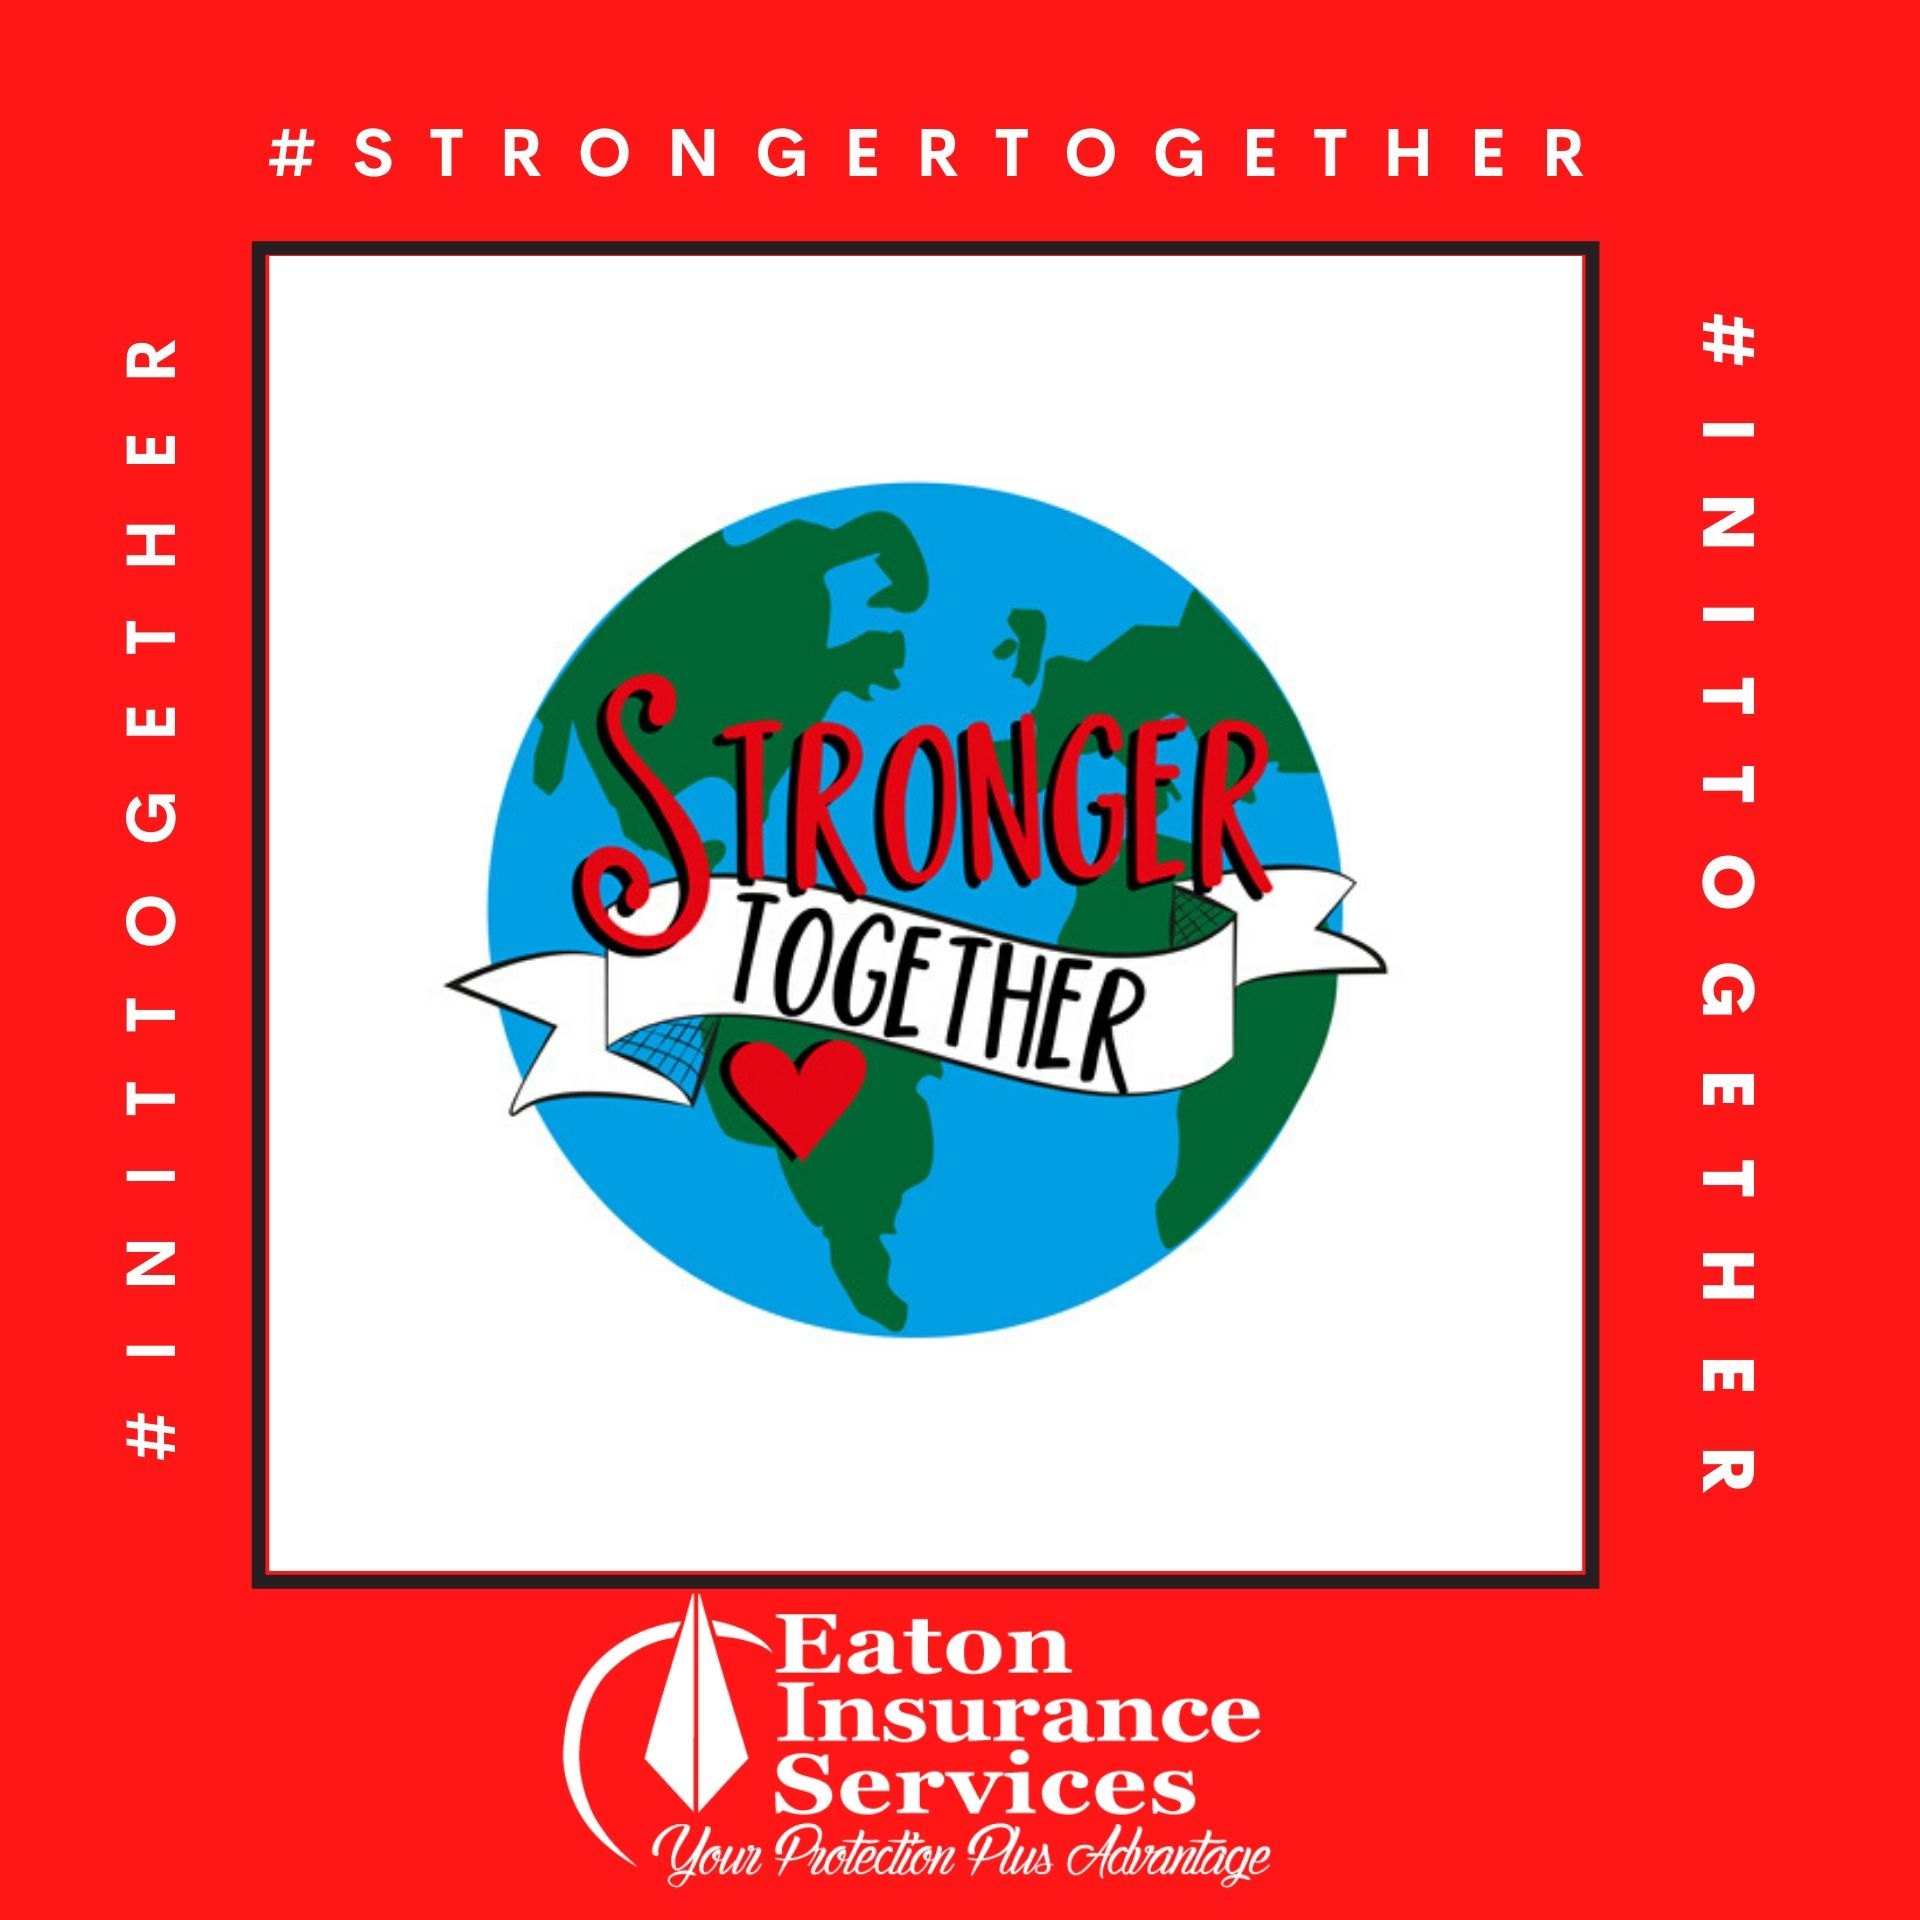 in it together, stronger together, clio michigan